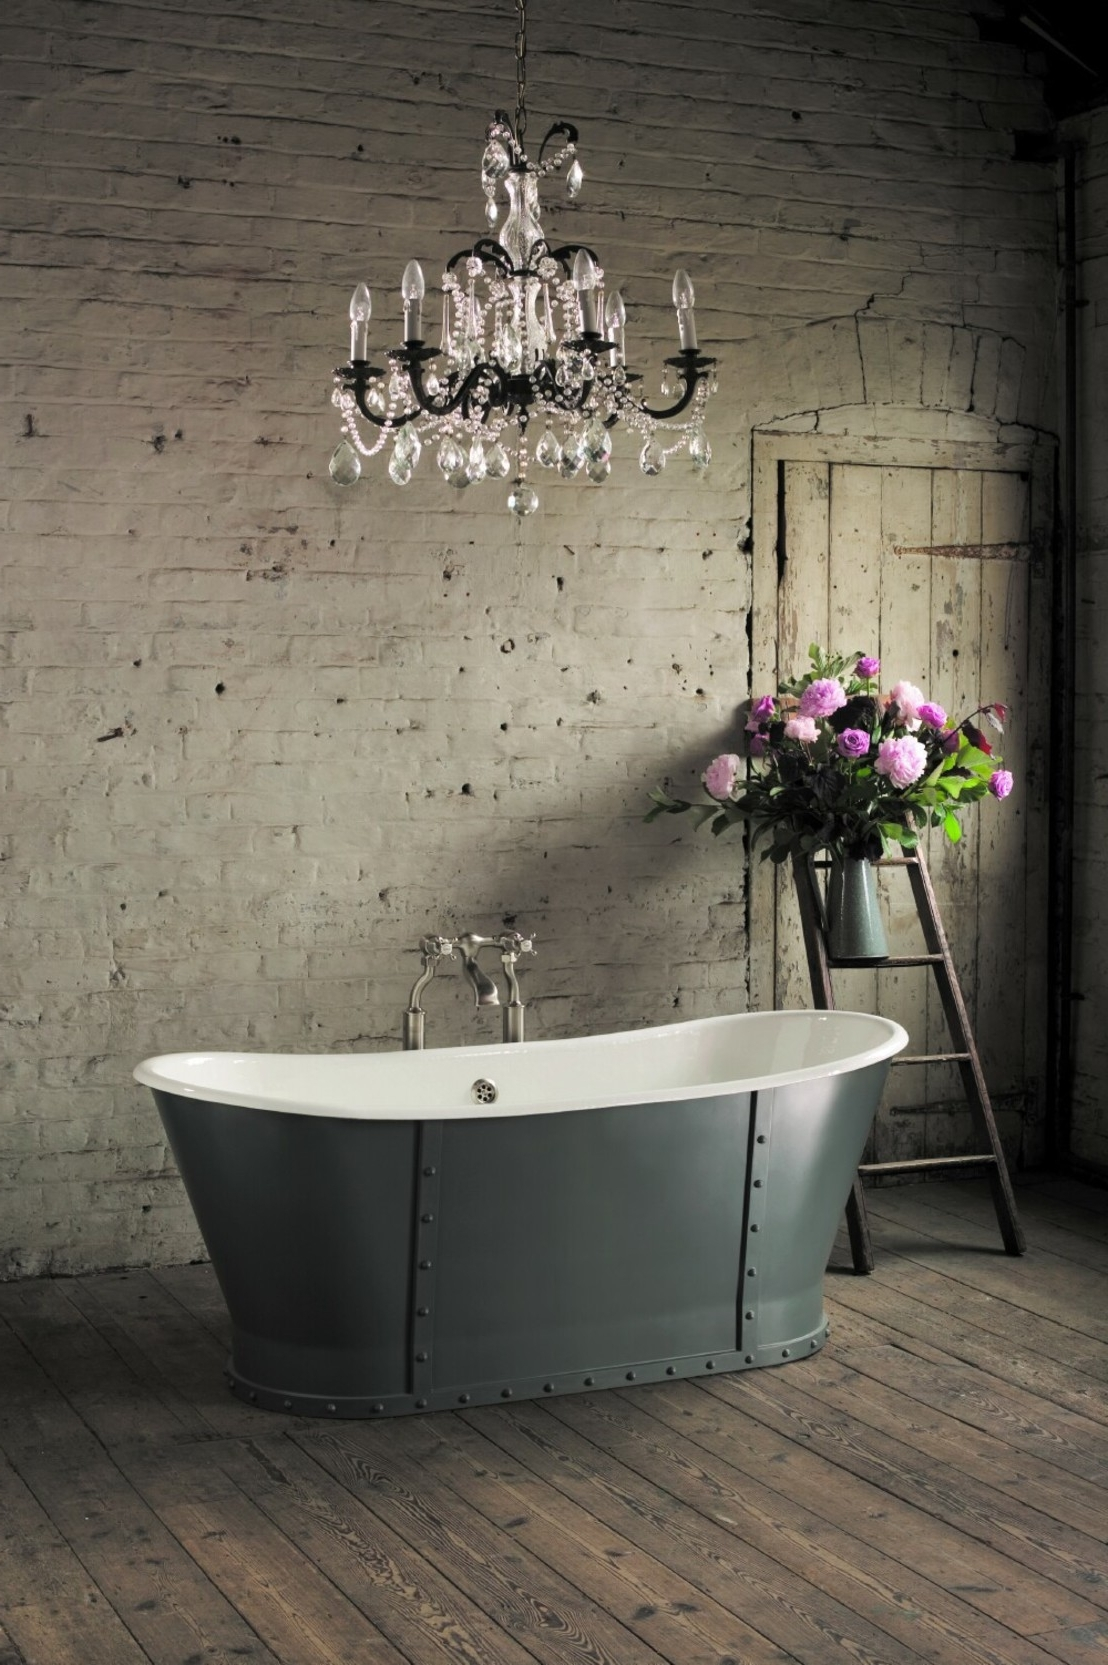 Best And Newest Chandelier In The Bathroom Inside Bathroom: Bathroom Chandeliers Crystals Over Tub In A Rustic (View 15 of 20)